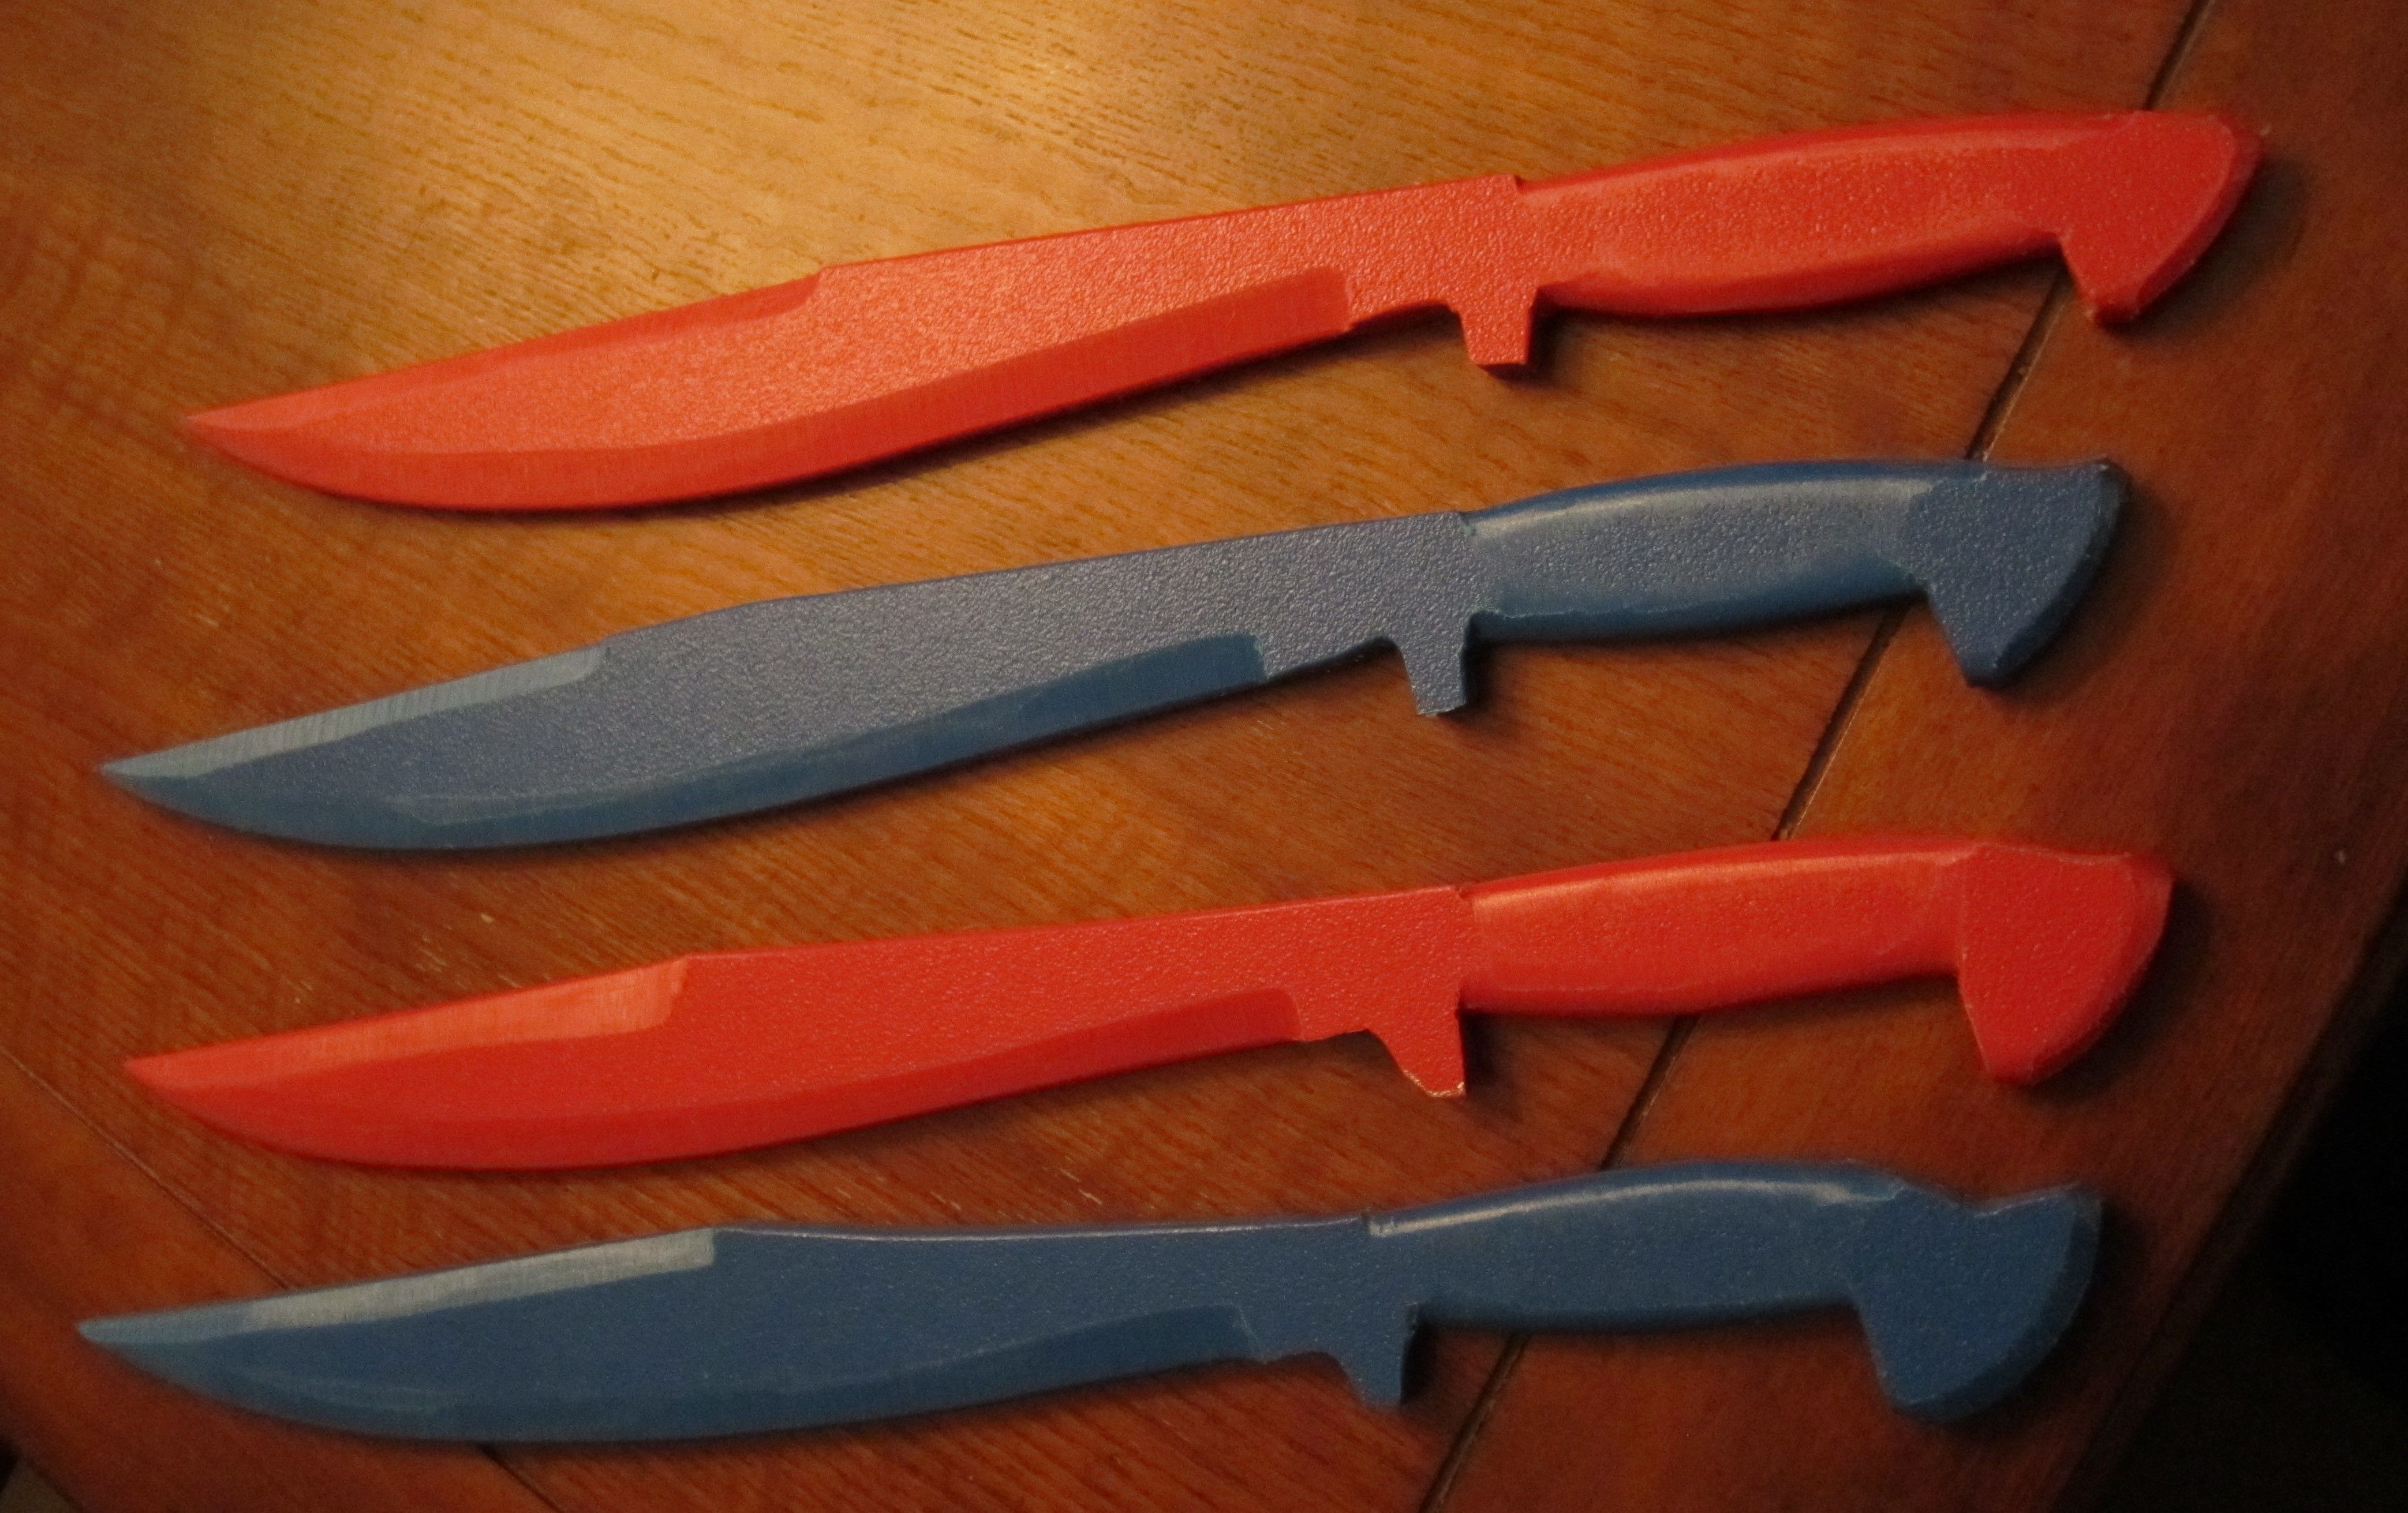 Some short training swords made out of hard plastic  Feels